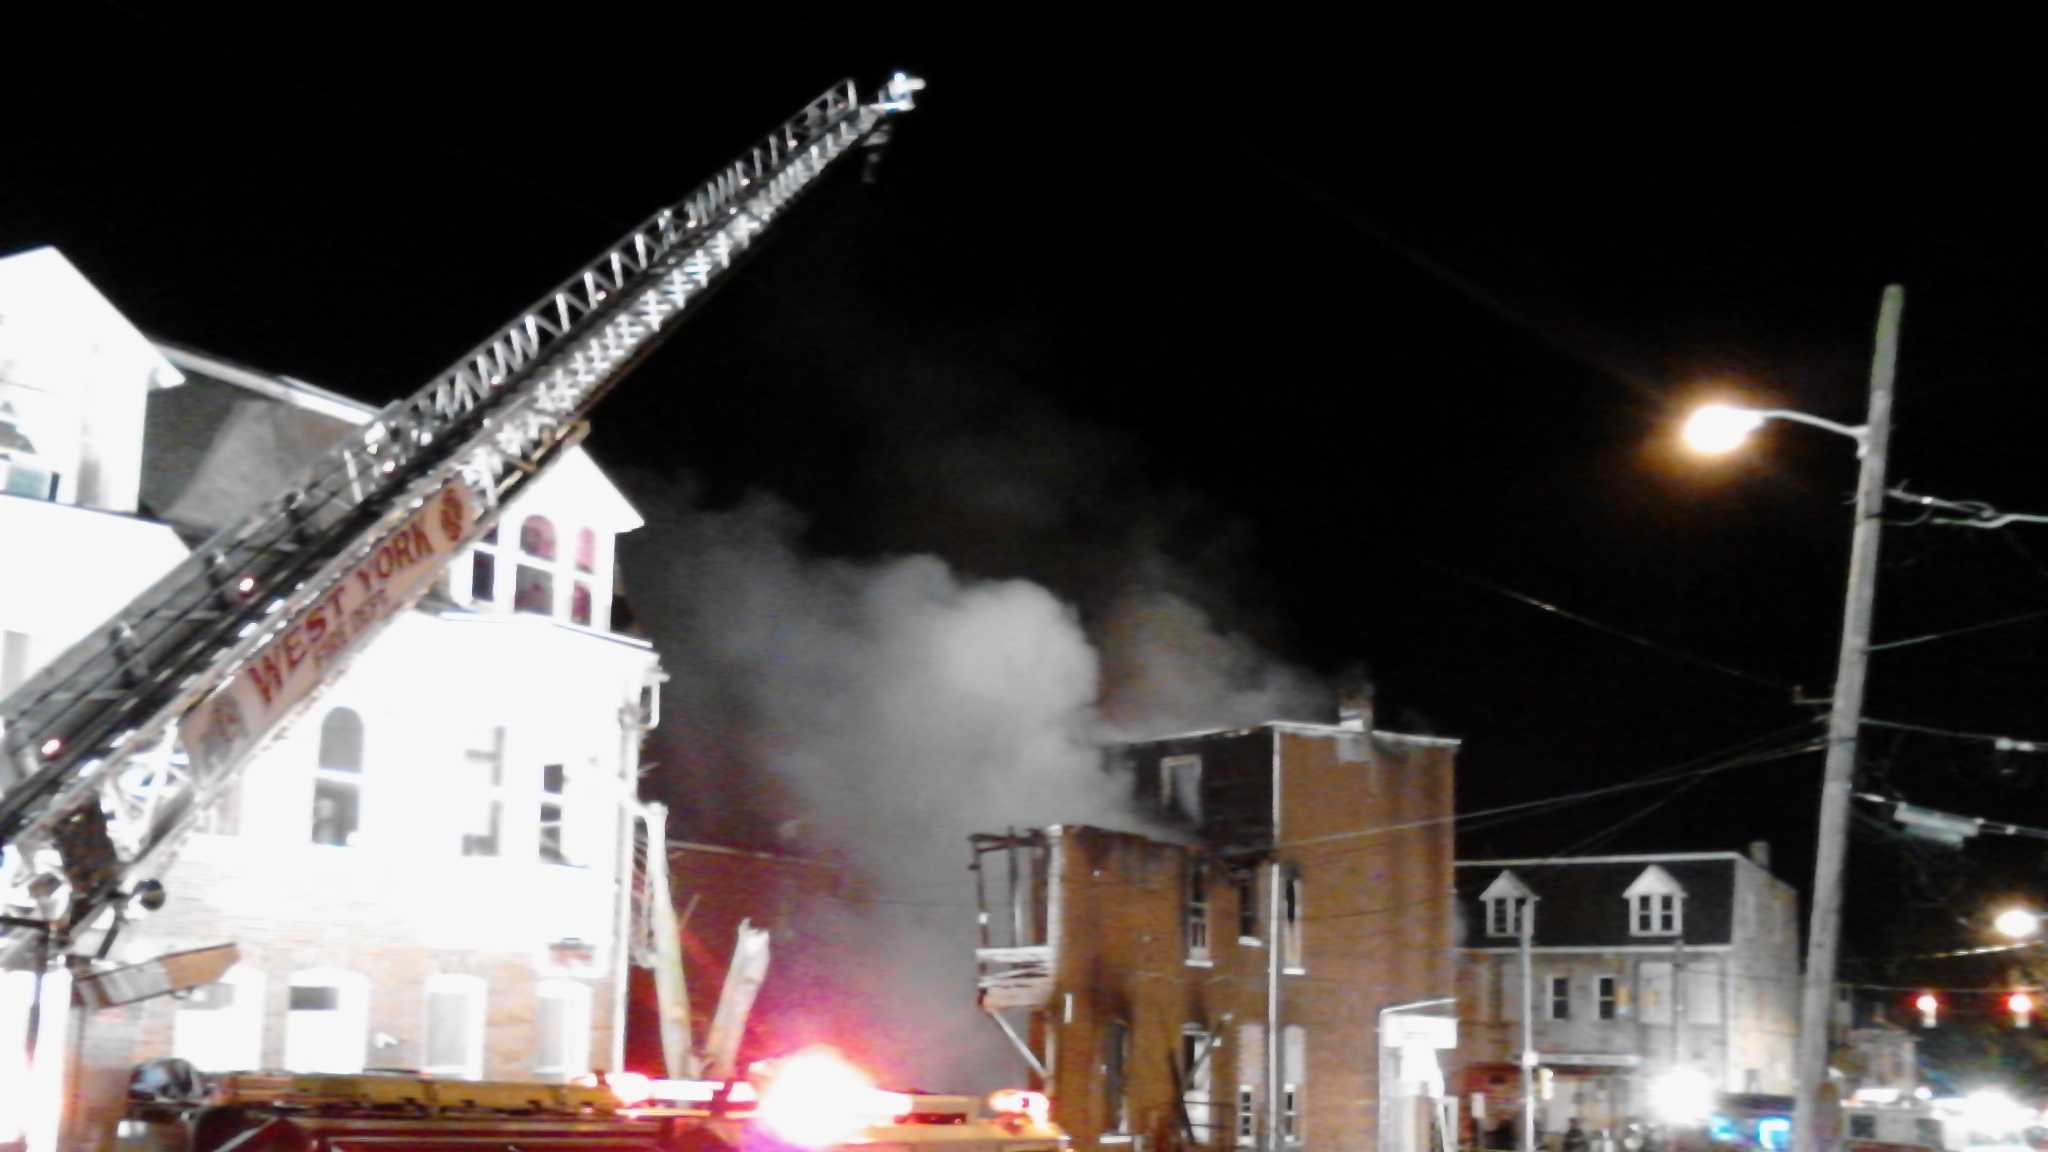 Firefighters battle a blaze in the 500 block of West Princess Street in York.